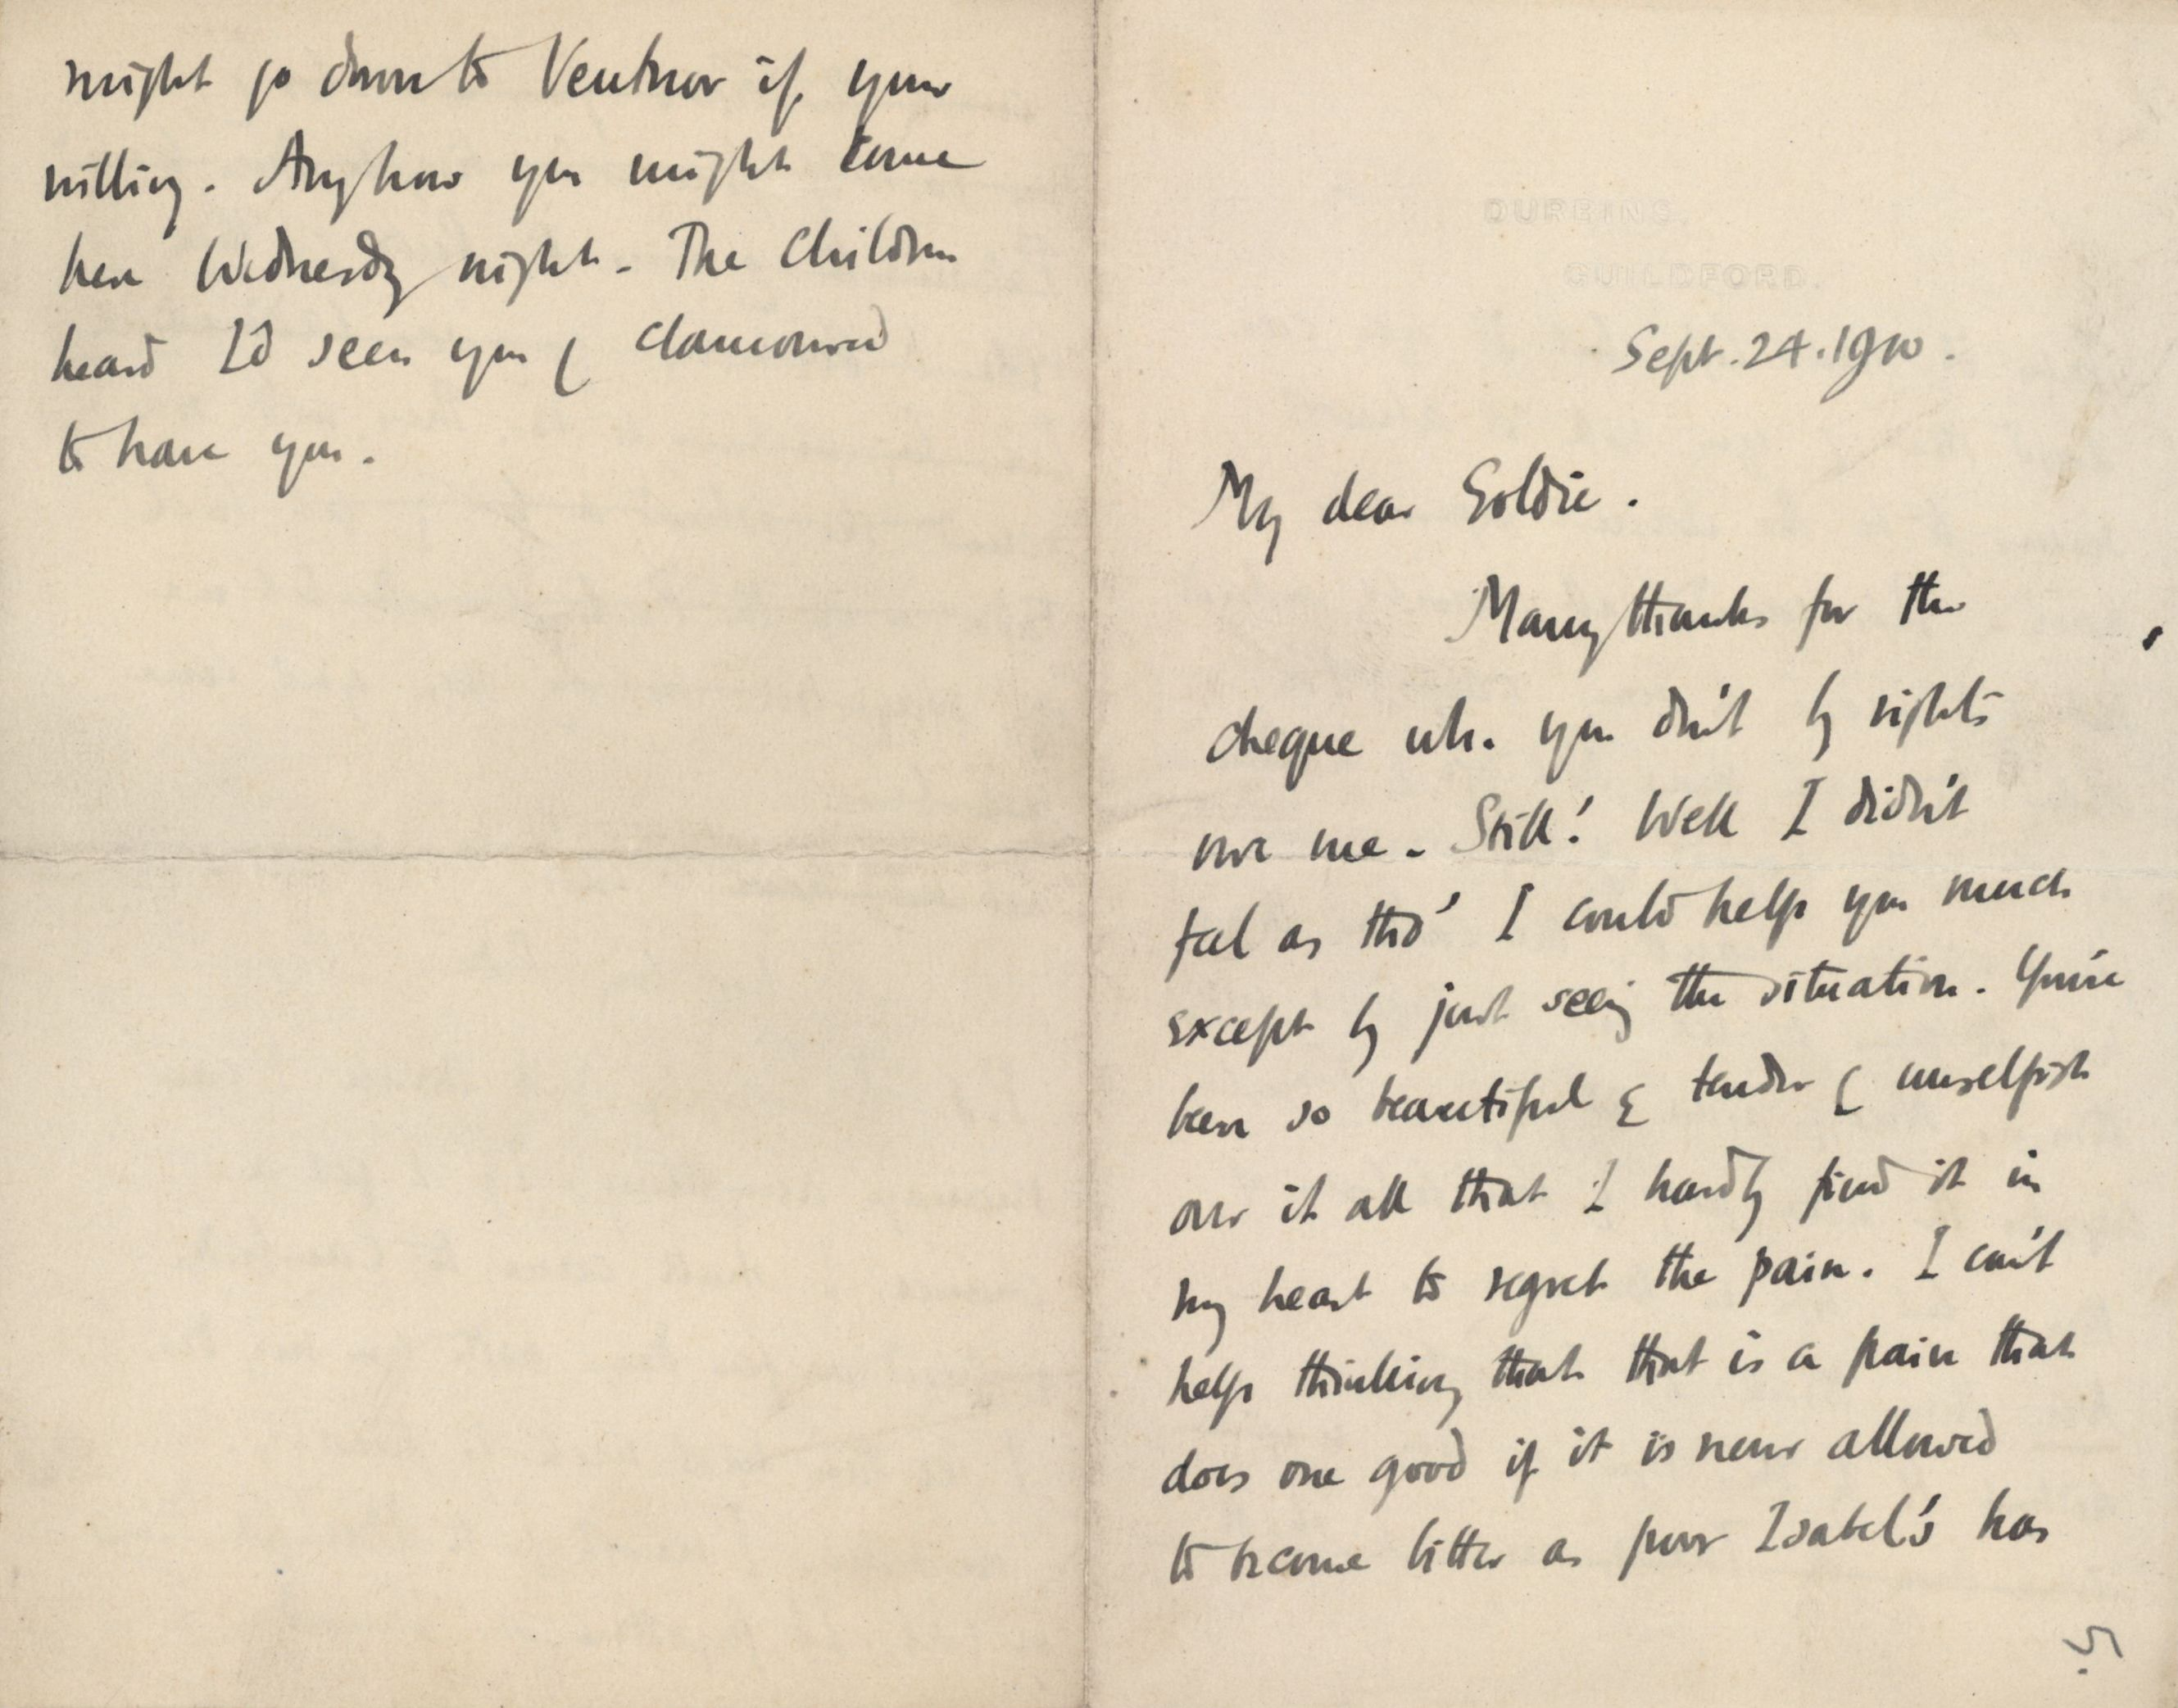 Letter from Roger Fry to Goldsworthy Lowes Dickinson, 24 September 1910, concerning love and hurt. [REF/3/46/6]